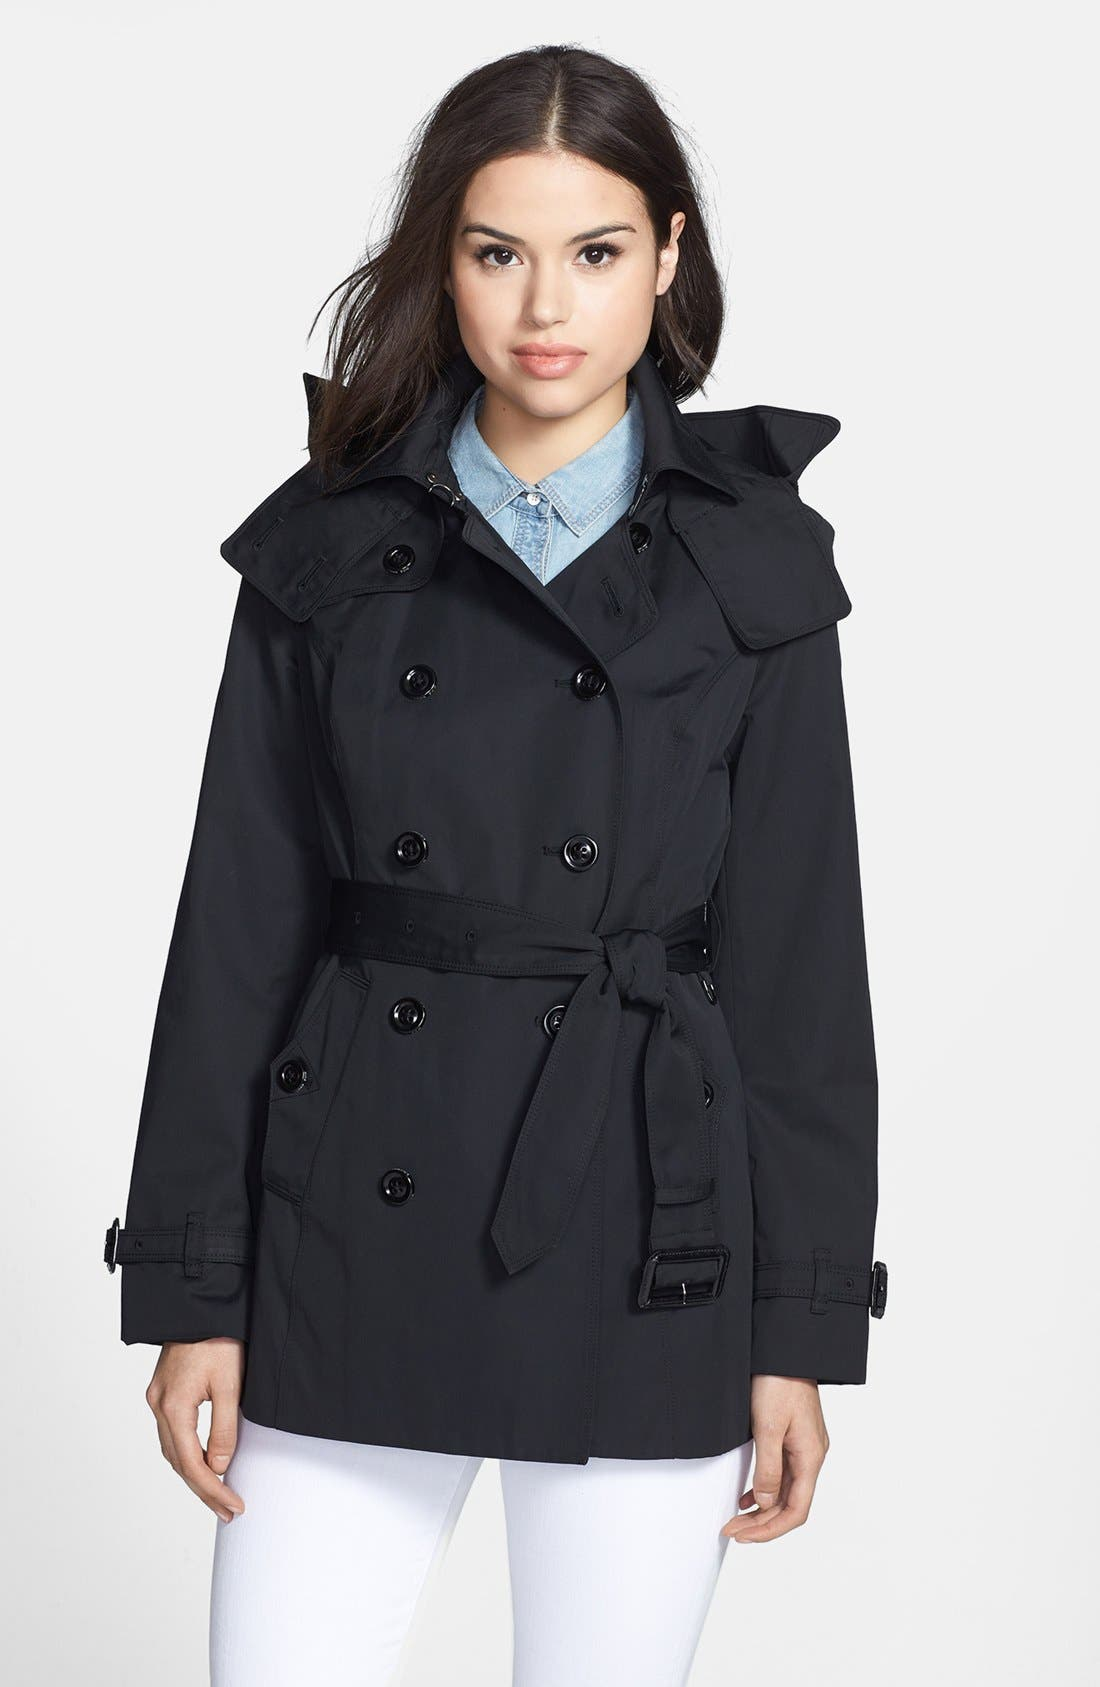 Heritage Trench Coat with Detachable Hood,                             Main thumbnail 1, color,                             Black